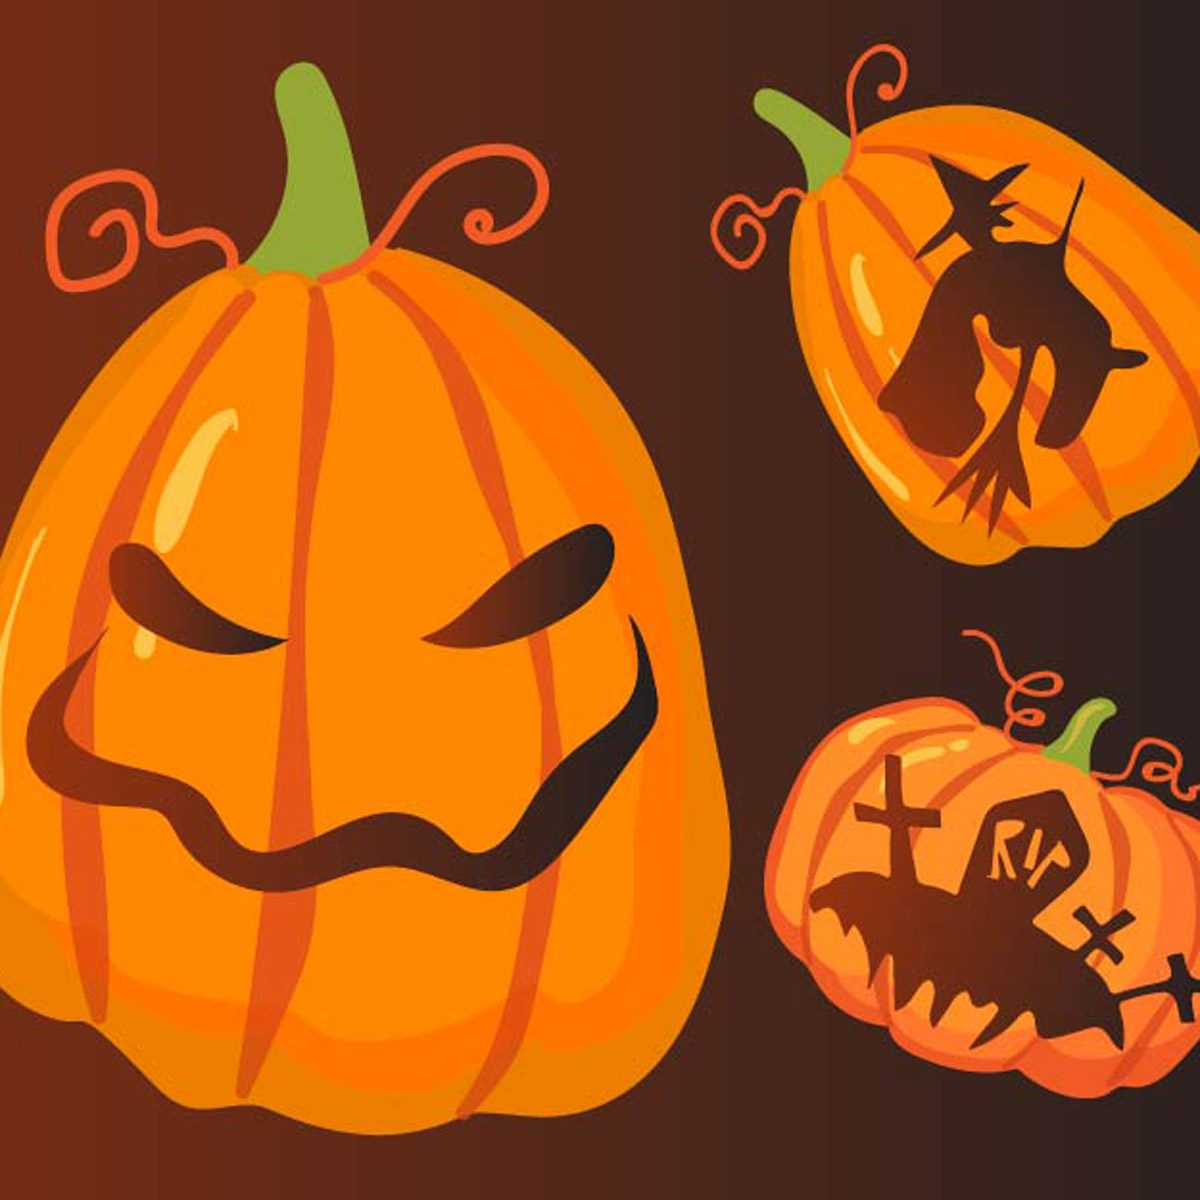 31 Free Pumpkin Carving Stencils To Take Your Jack O Lantern To The Next Level The Family Handyman